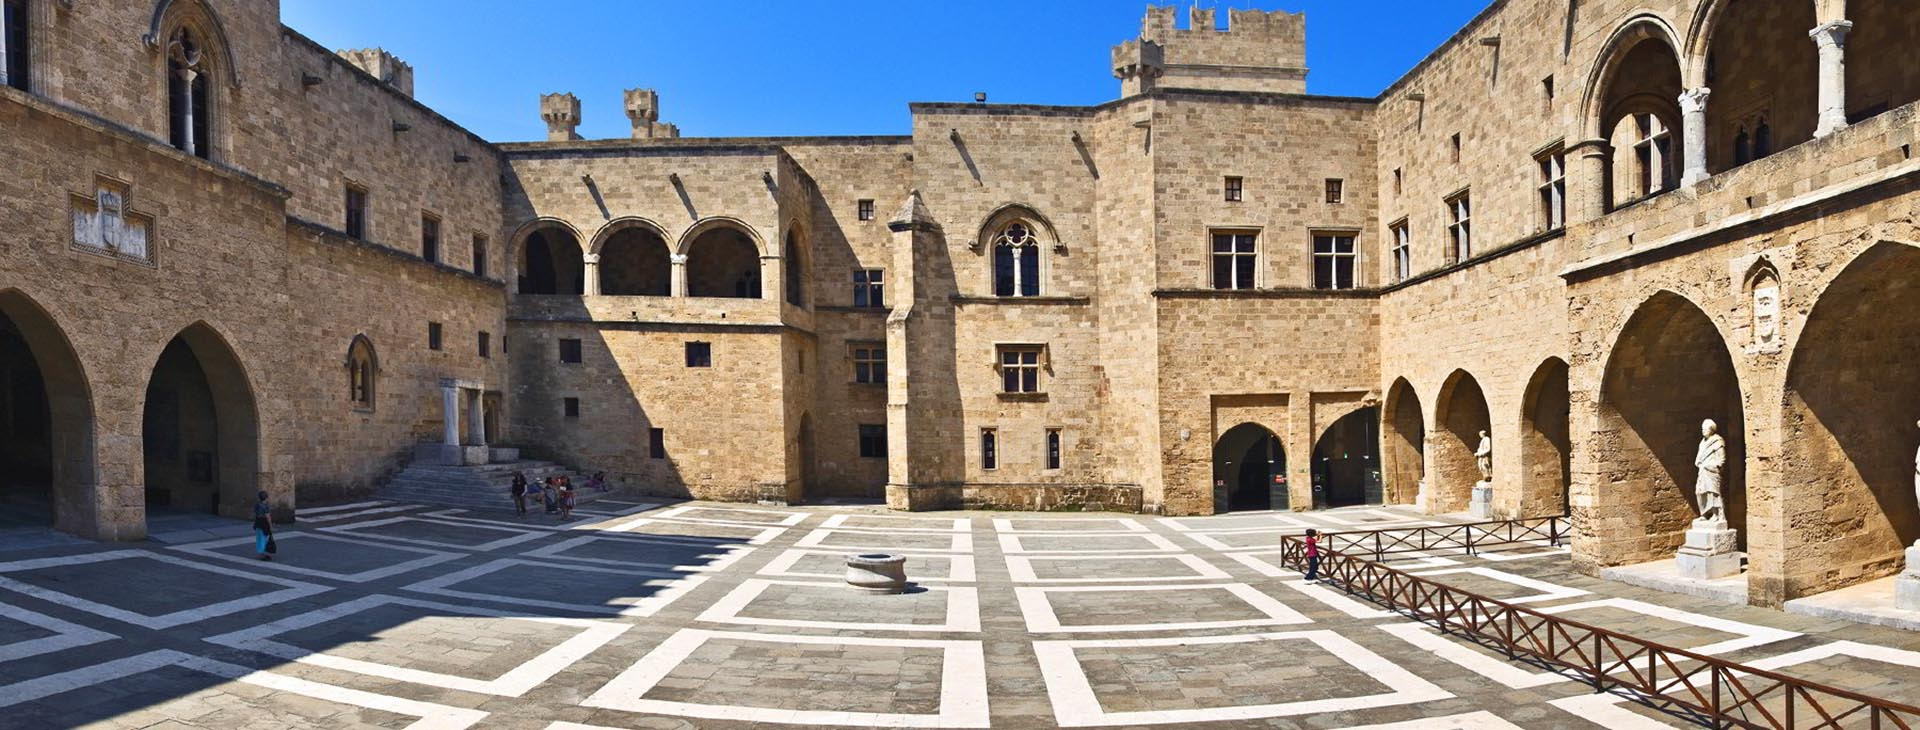 The Grand Master's Palace in Rhodes town